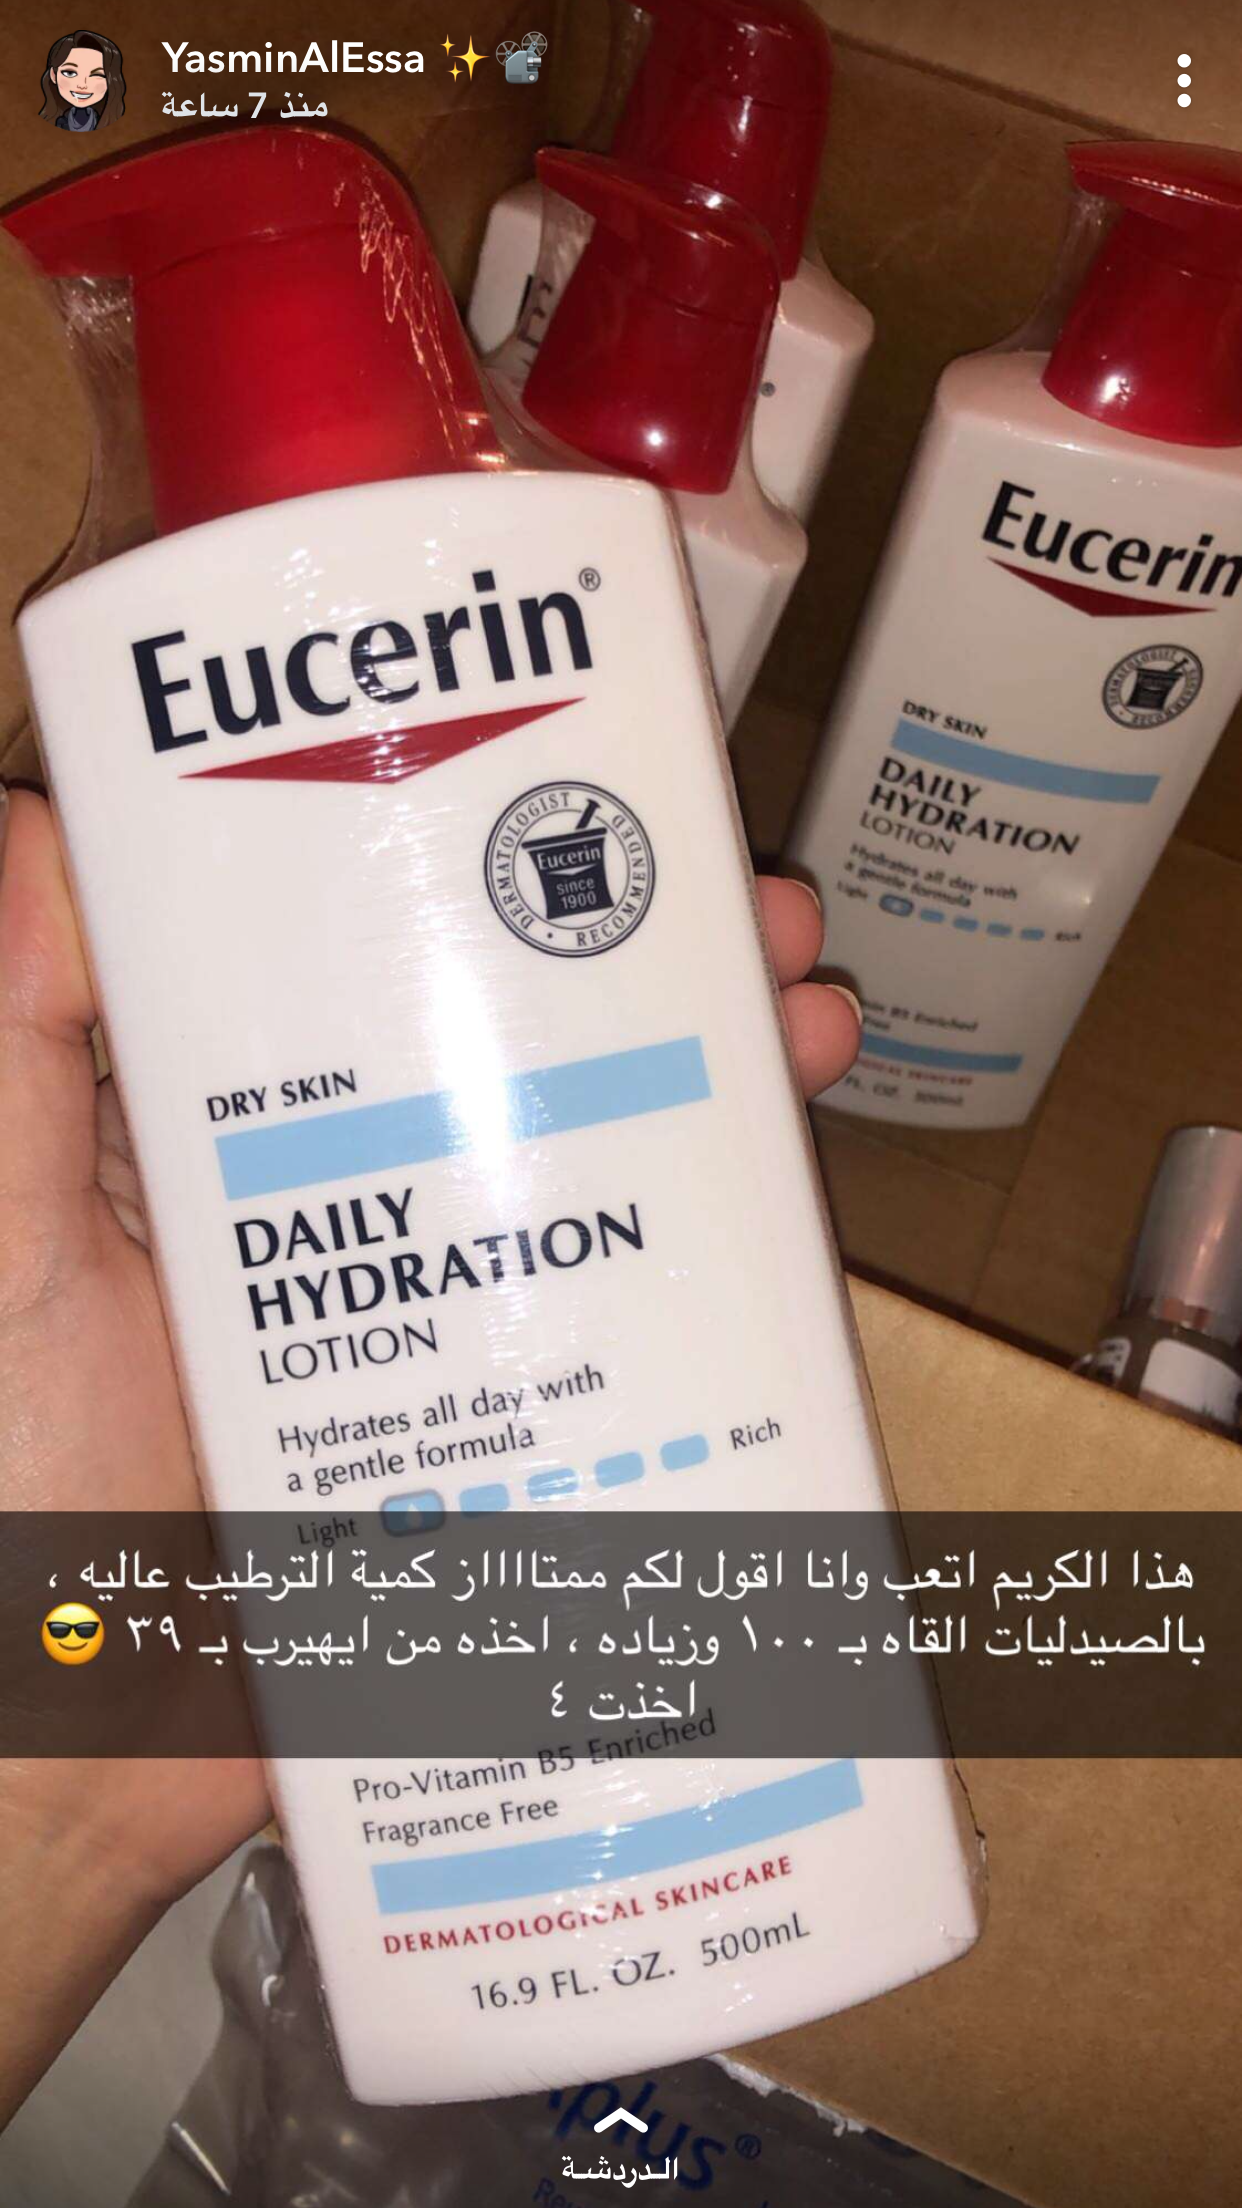 Pin By Arwa On ايهيرب Beauty Skin Care Routine Fragrance Free Skin Care Facial Skin Care Routine